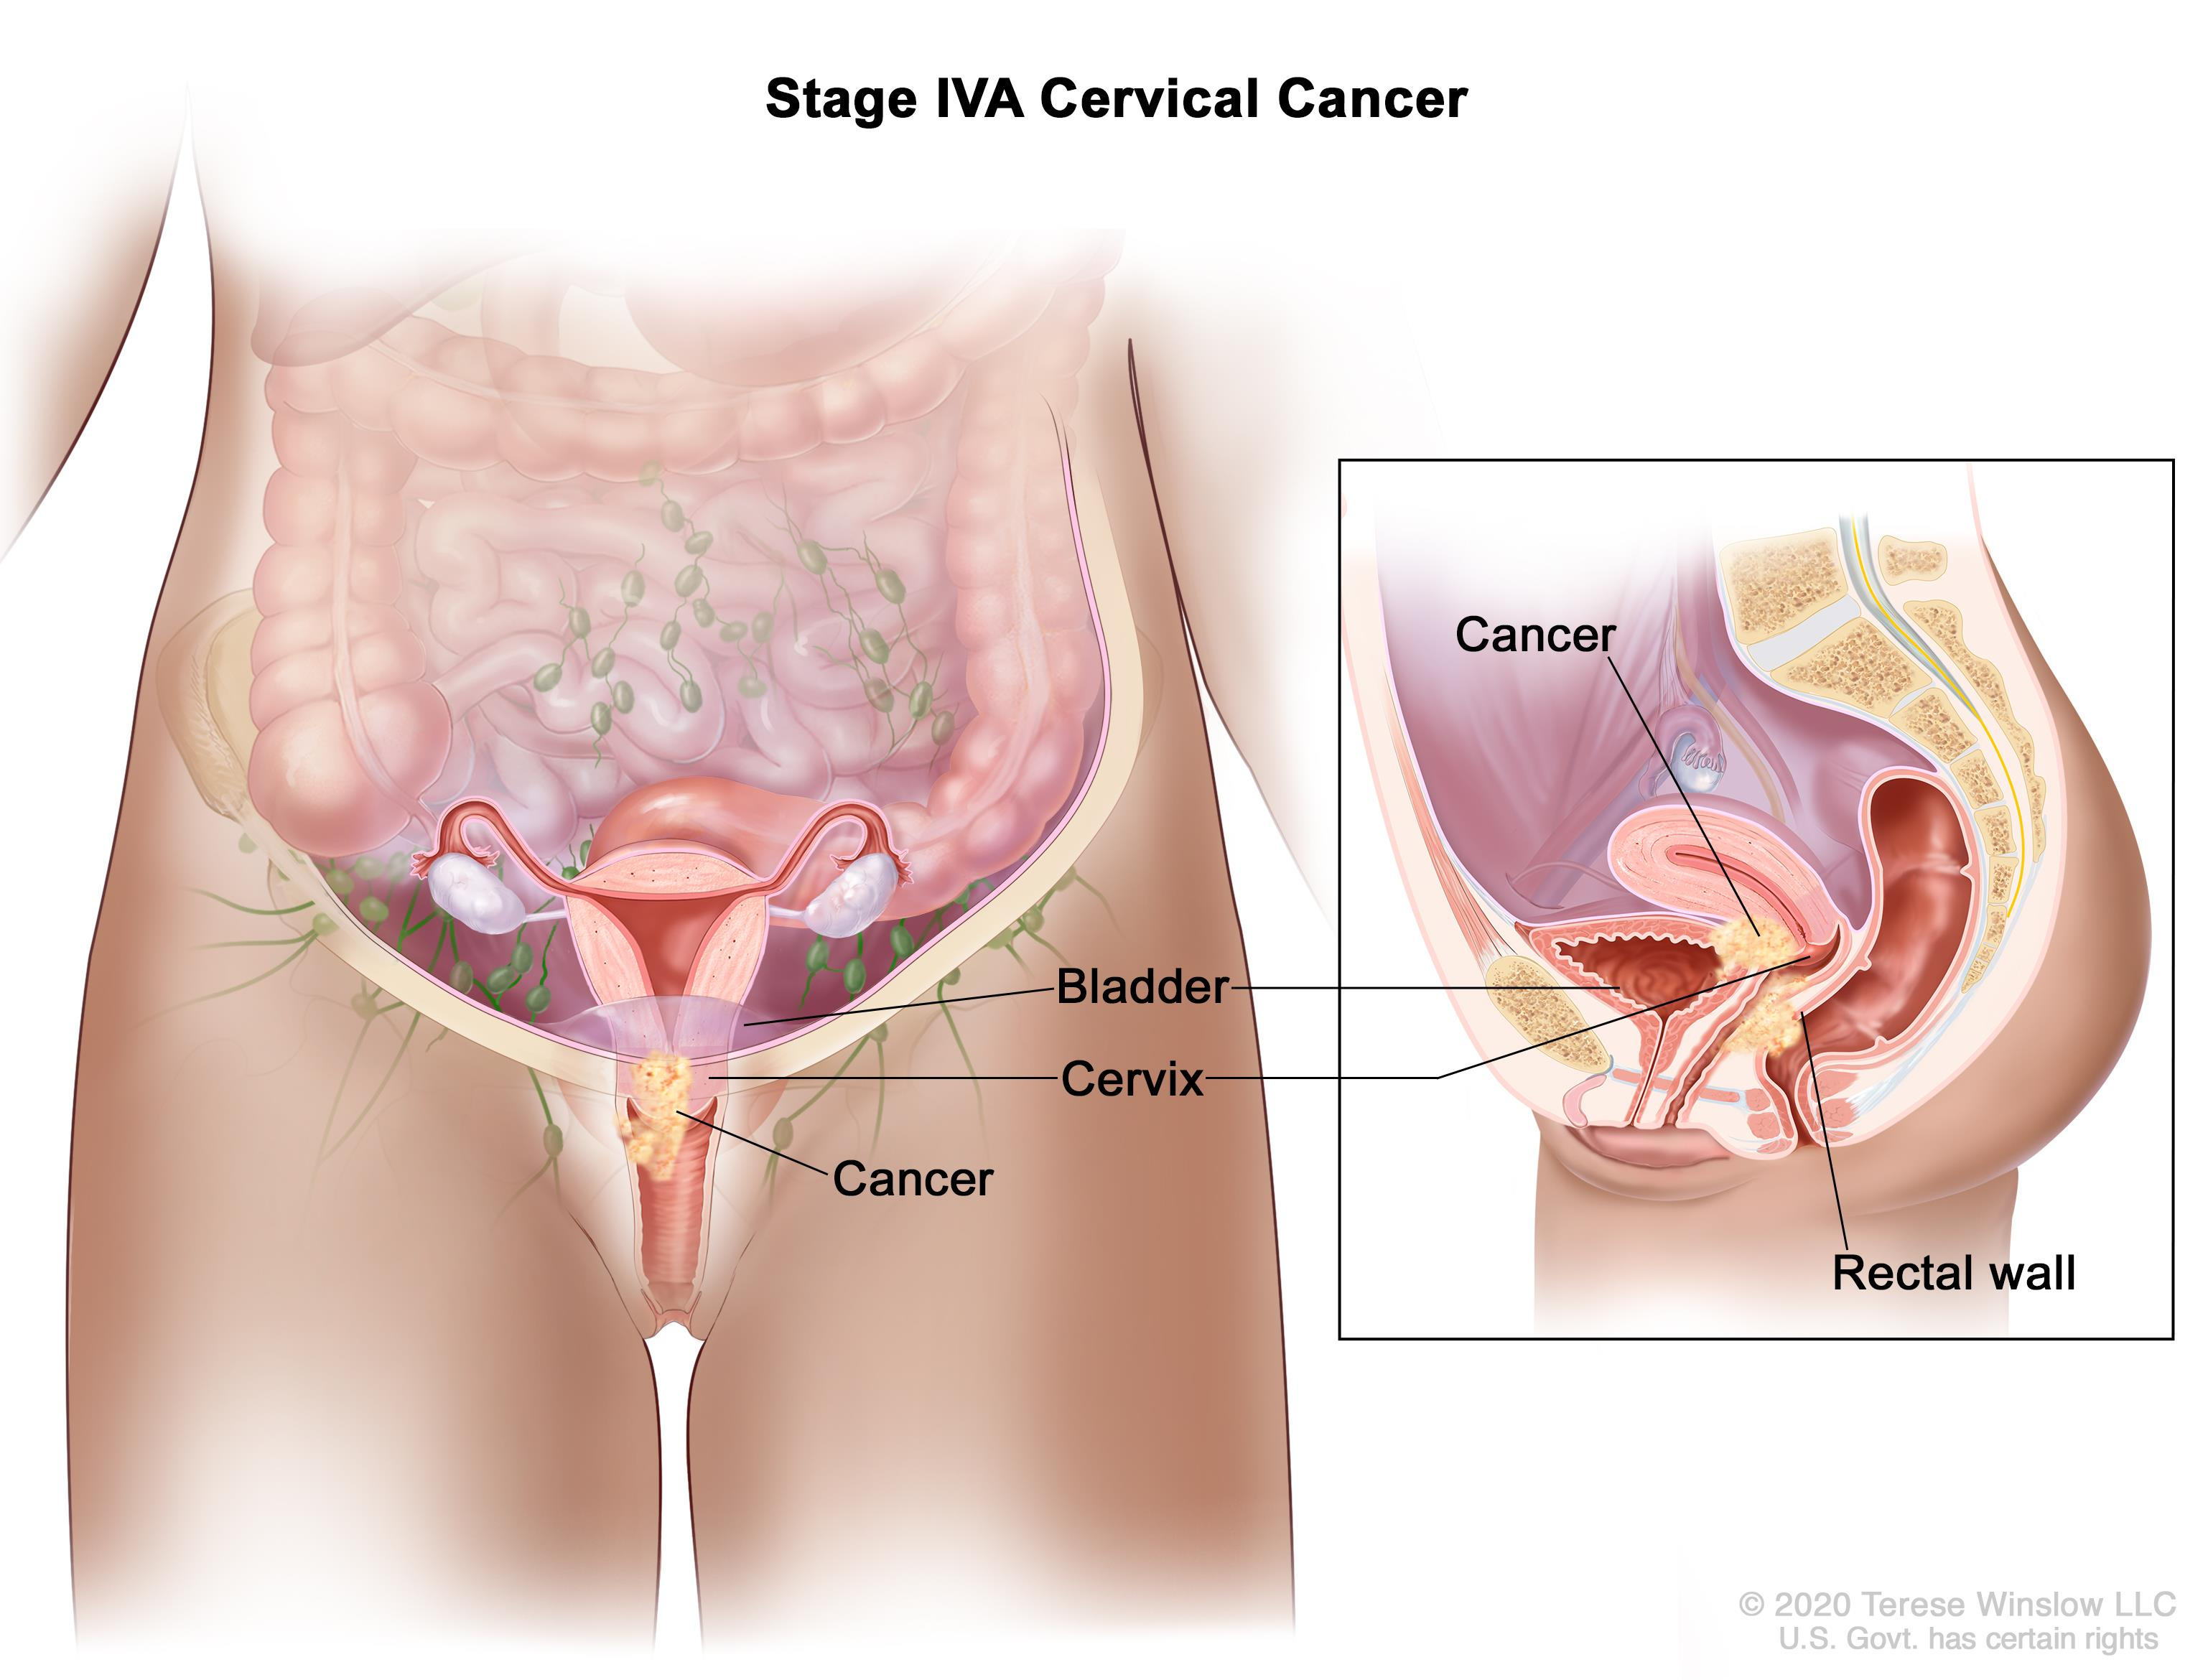 cervical cancer metastatic sites hpv and gardasil vaccine